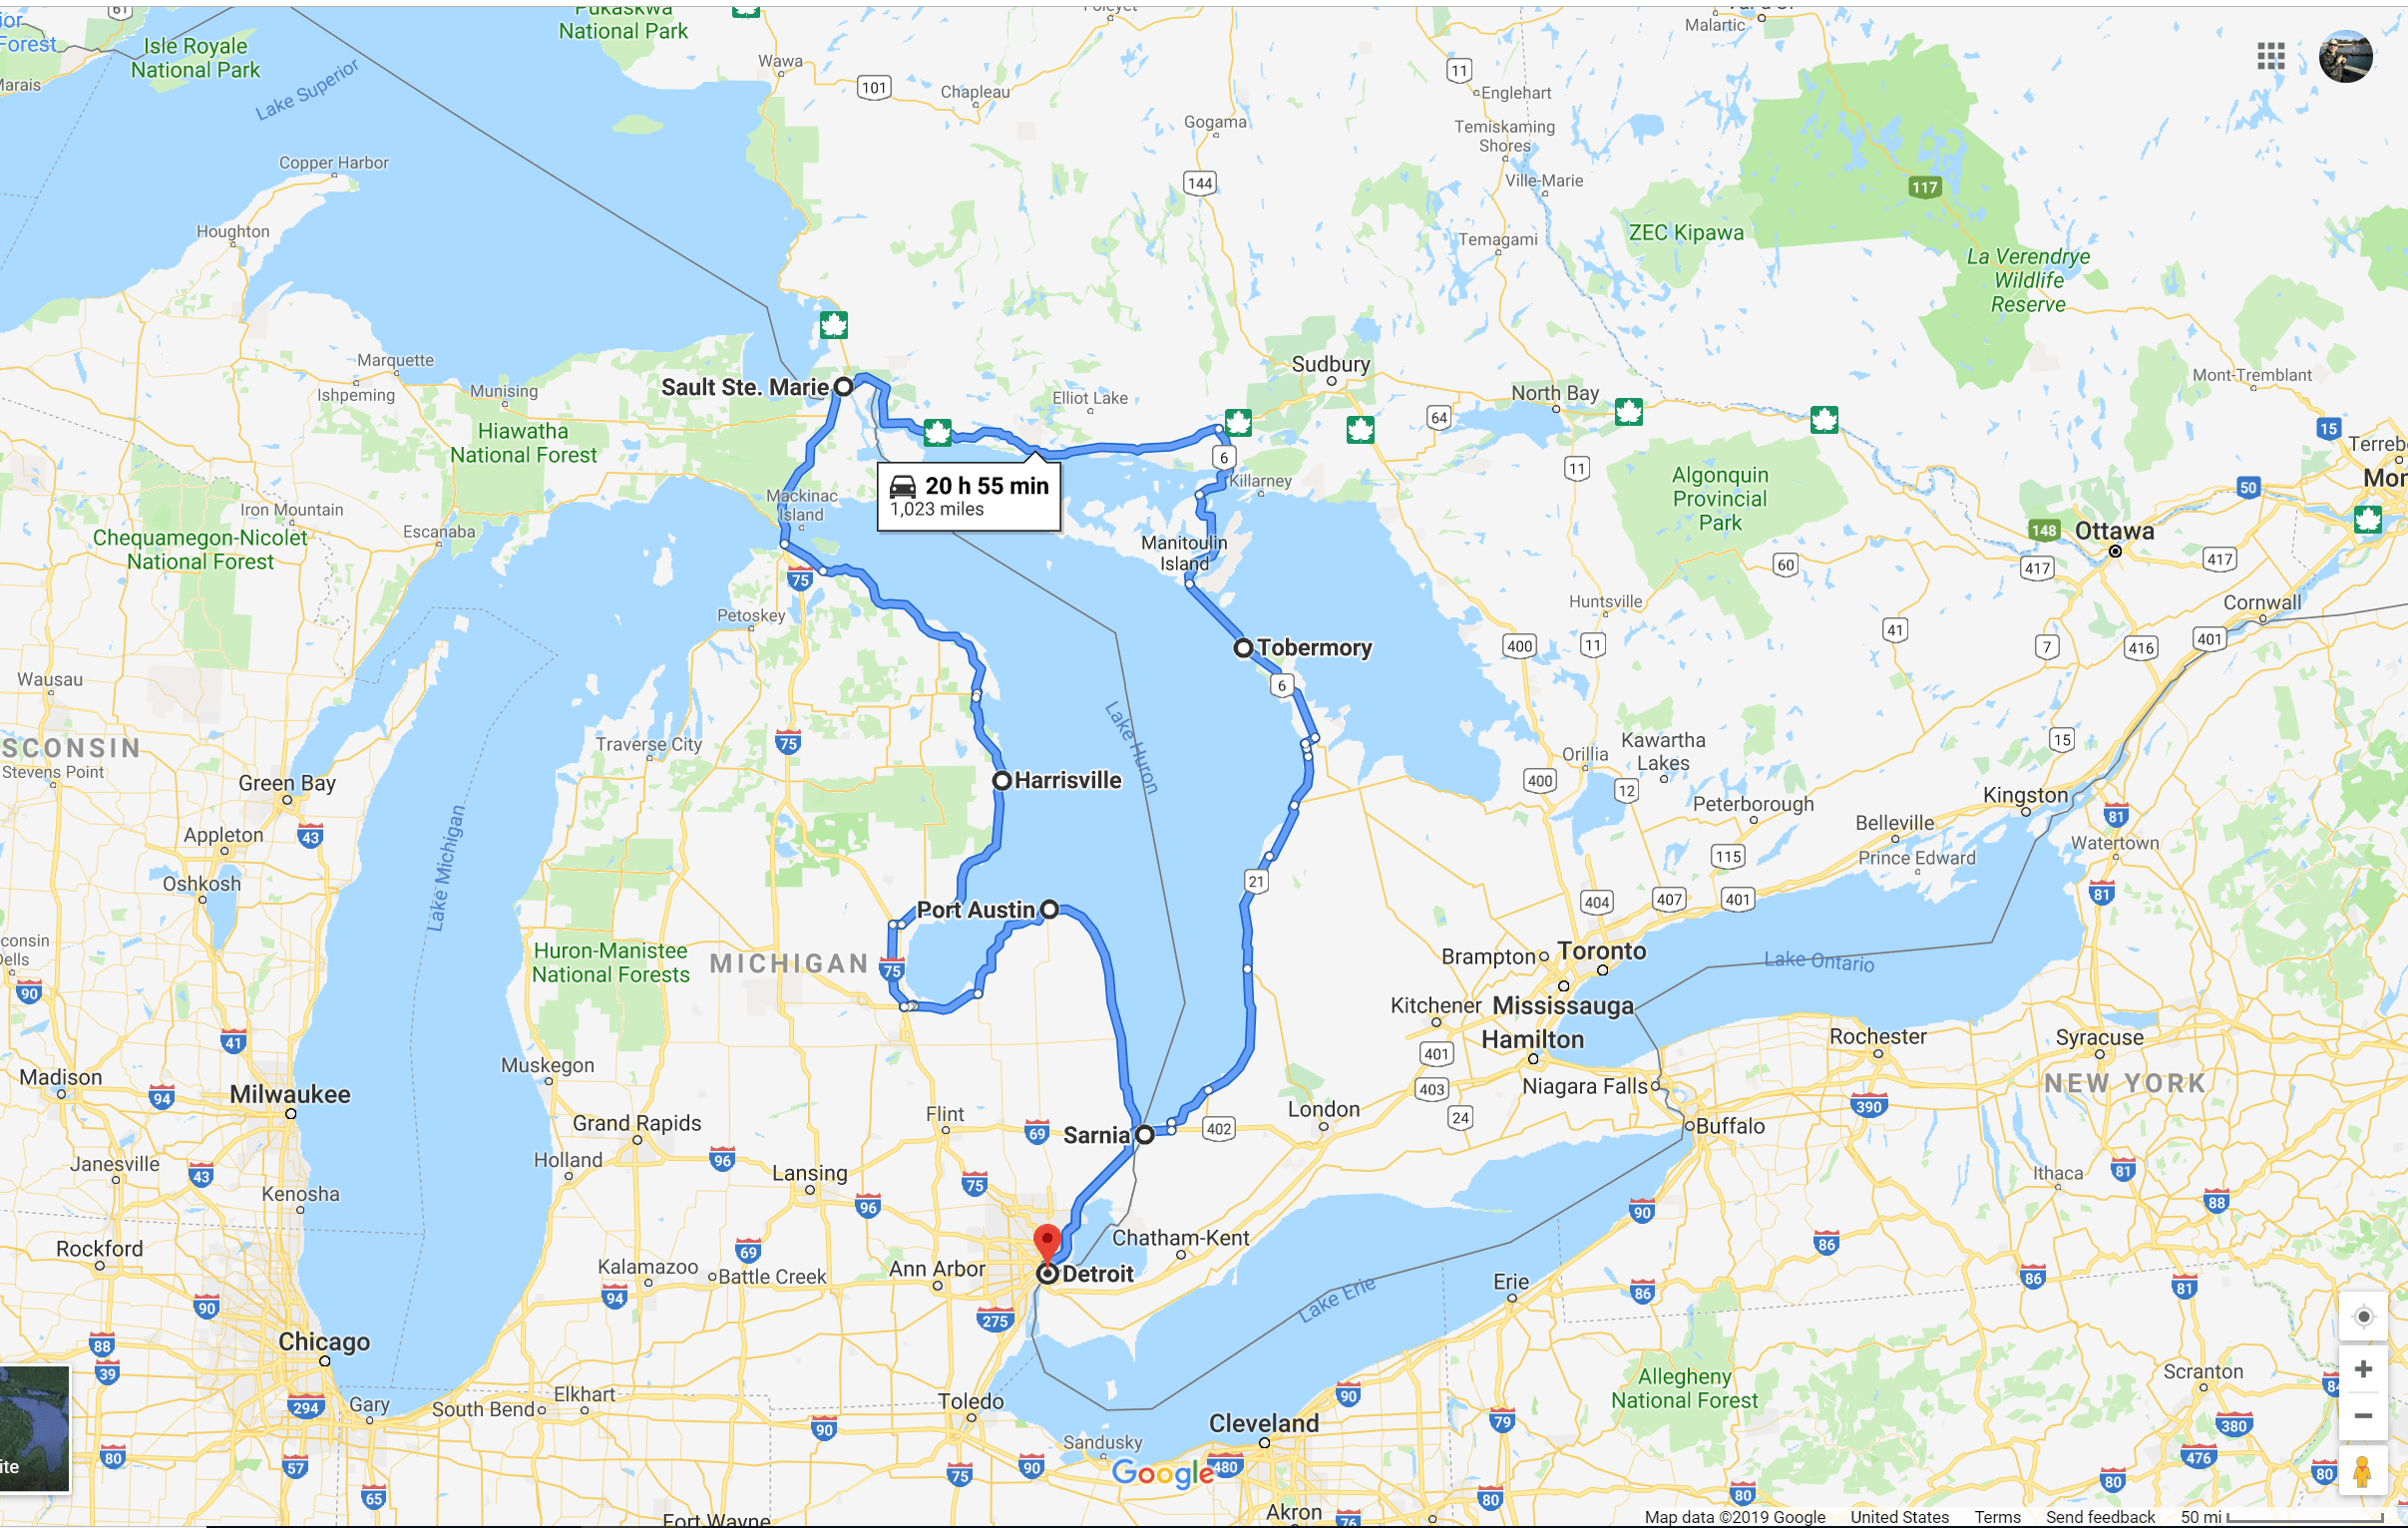 Contemplating 5 Great Lakes Road Trips On 5 000 Miles Of